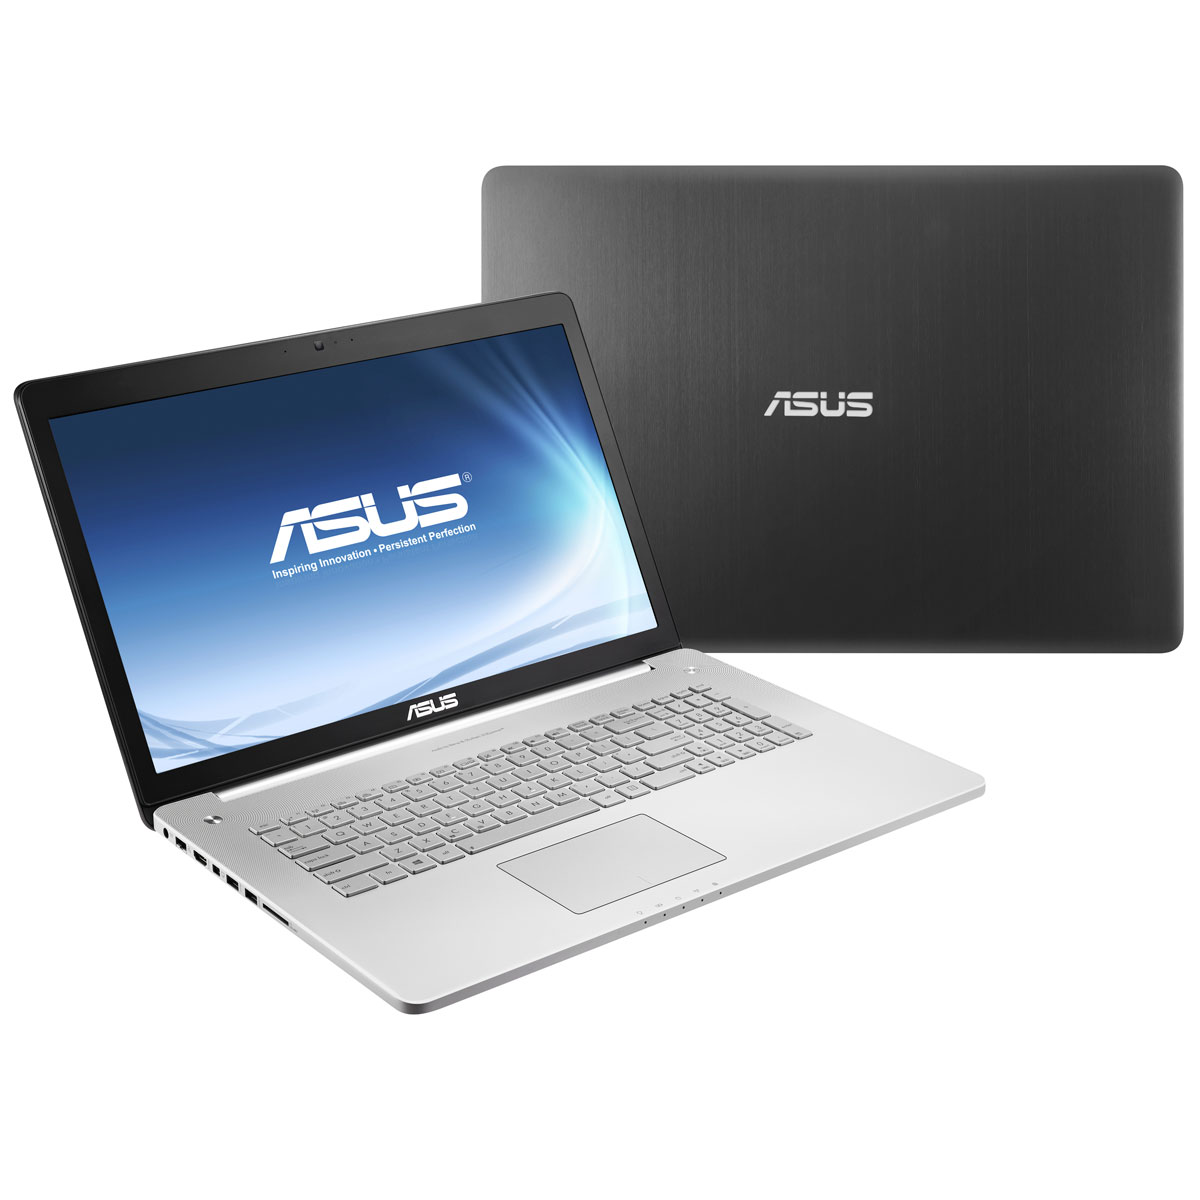 "PC portable ASUS N750JV-T4180H avec Leap Motion Intel Core i7-4700HQ 16 Go 750 Go 17.3"" LED NVIDIA GeForce GT 750M Graveur Blu-ray/DVD Wi-Fi N/Bluetooth Webcam Windows 8 64 bits (garantie constructeur 1 an)"